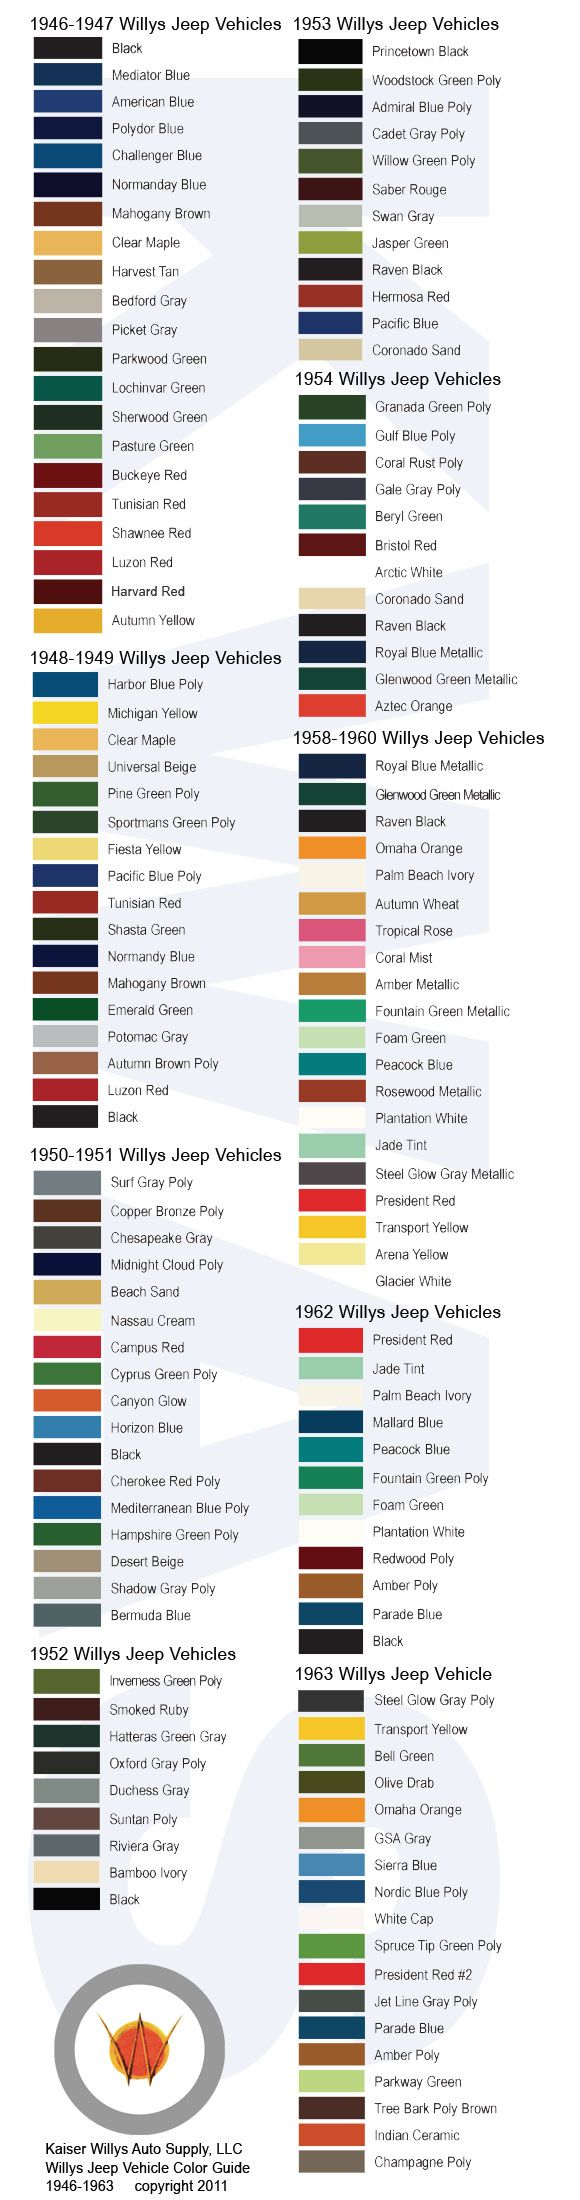 Willys Jeep Color Guide 1946 1963 Willys Jeep Willys Jeep Truck